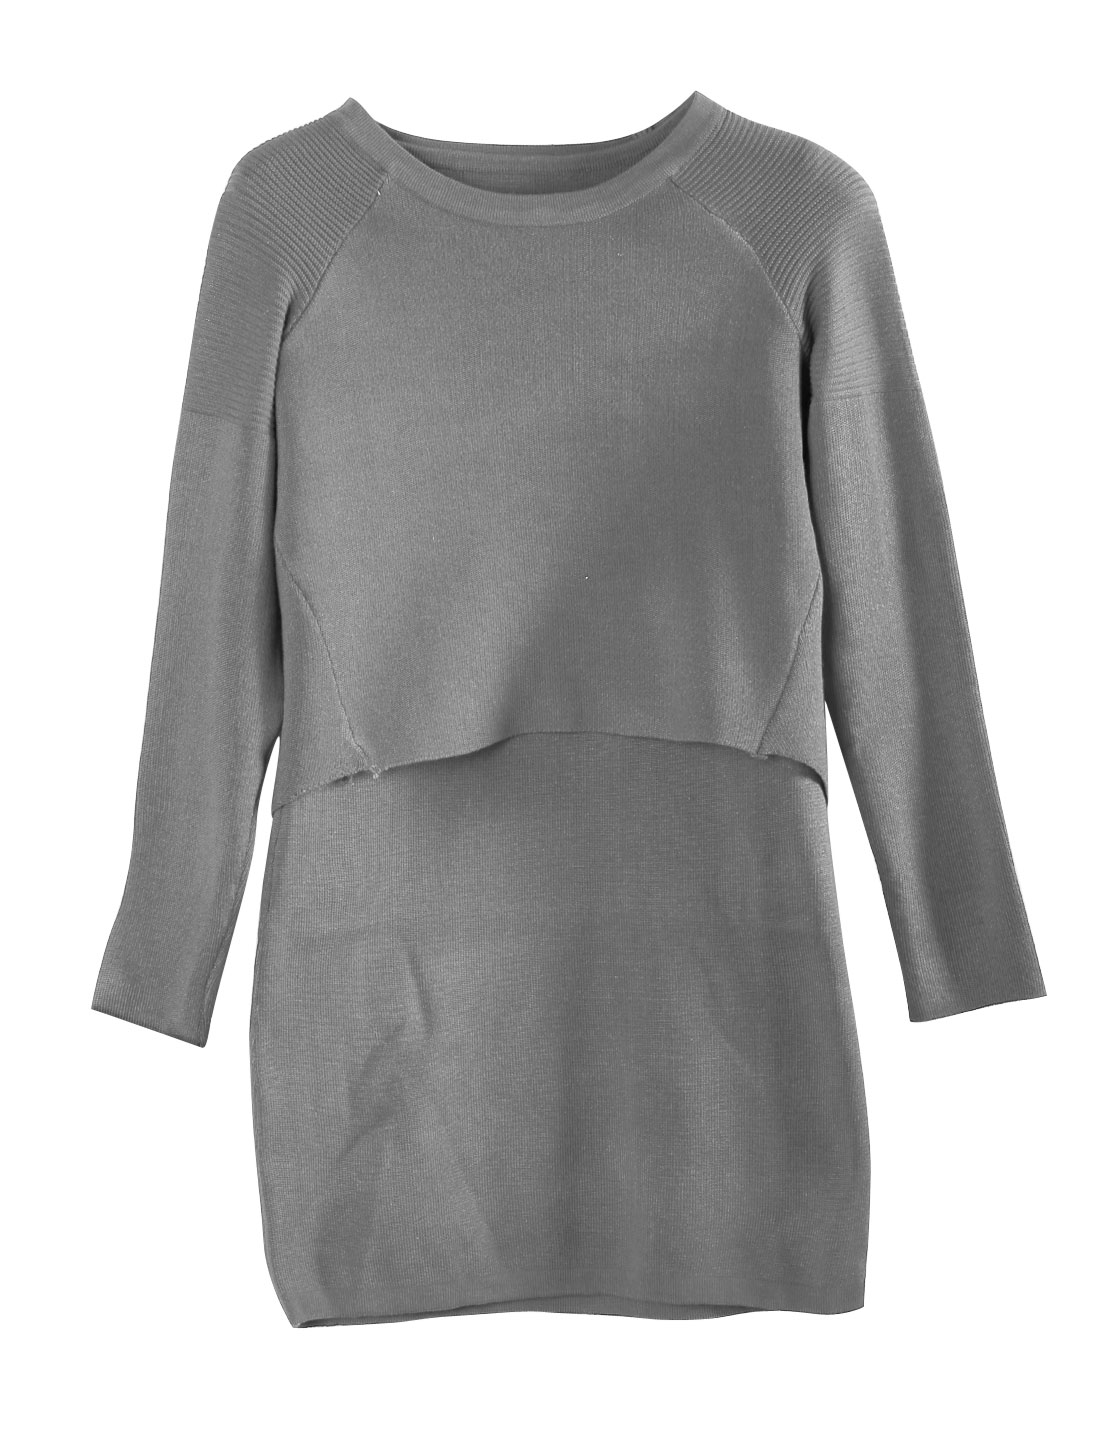 Ladies Round Neck Knit Tops w Sleeveless Sexy Dresses Gray S